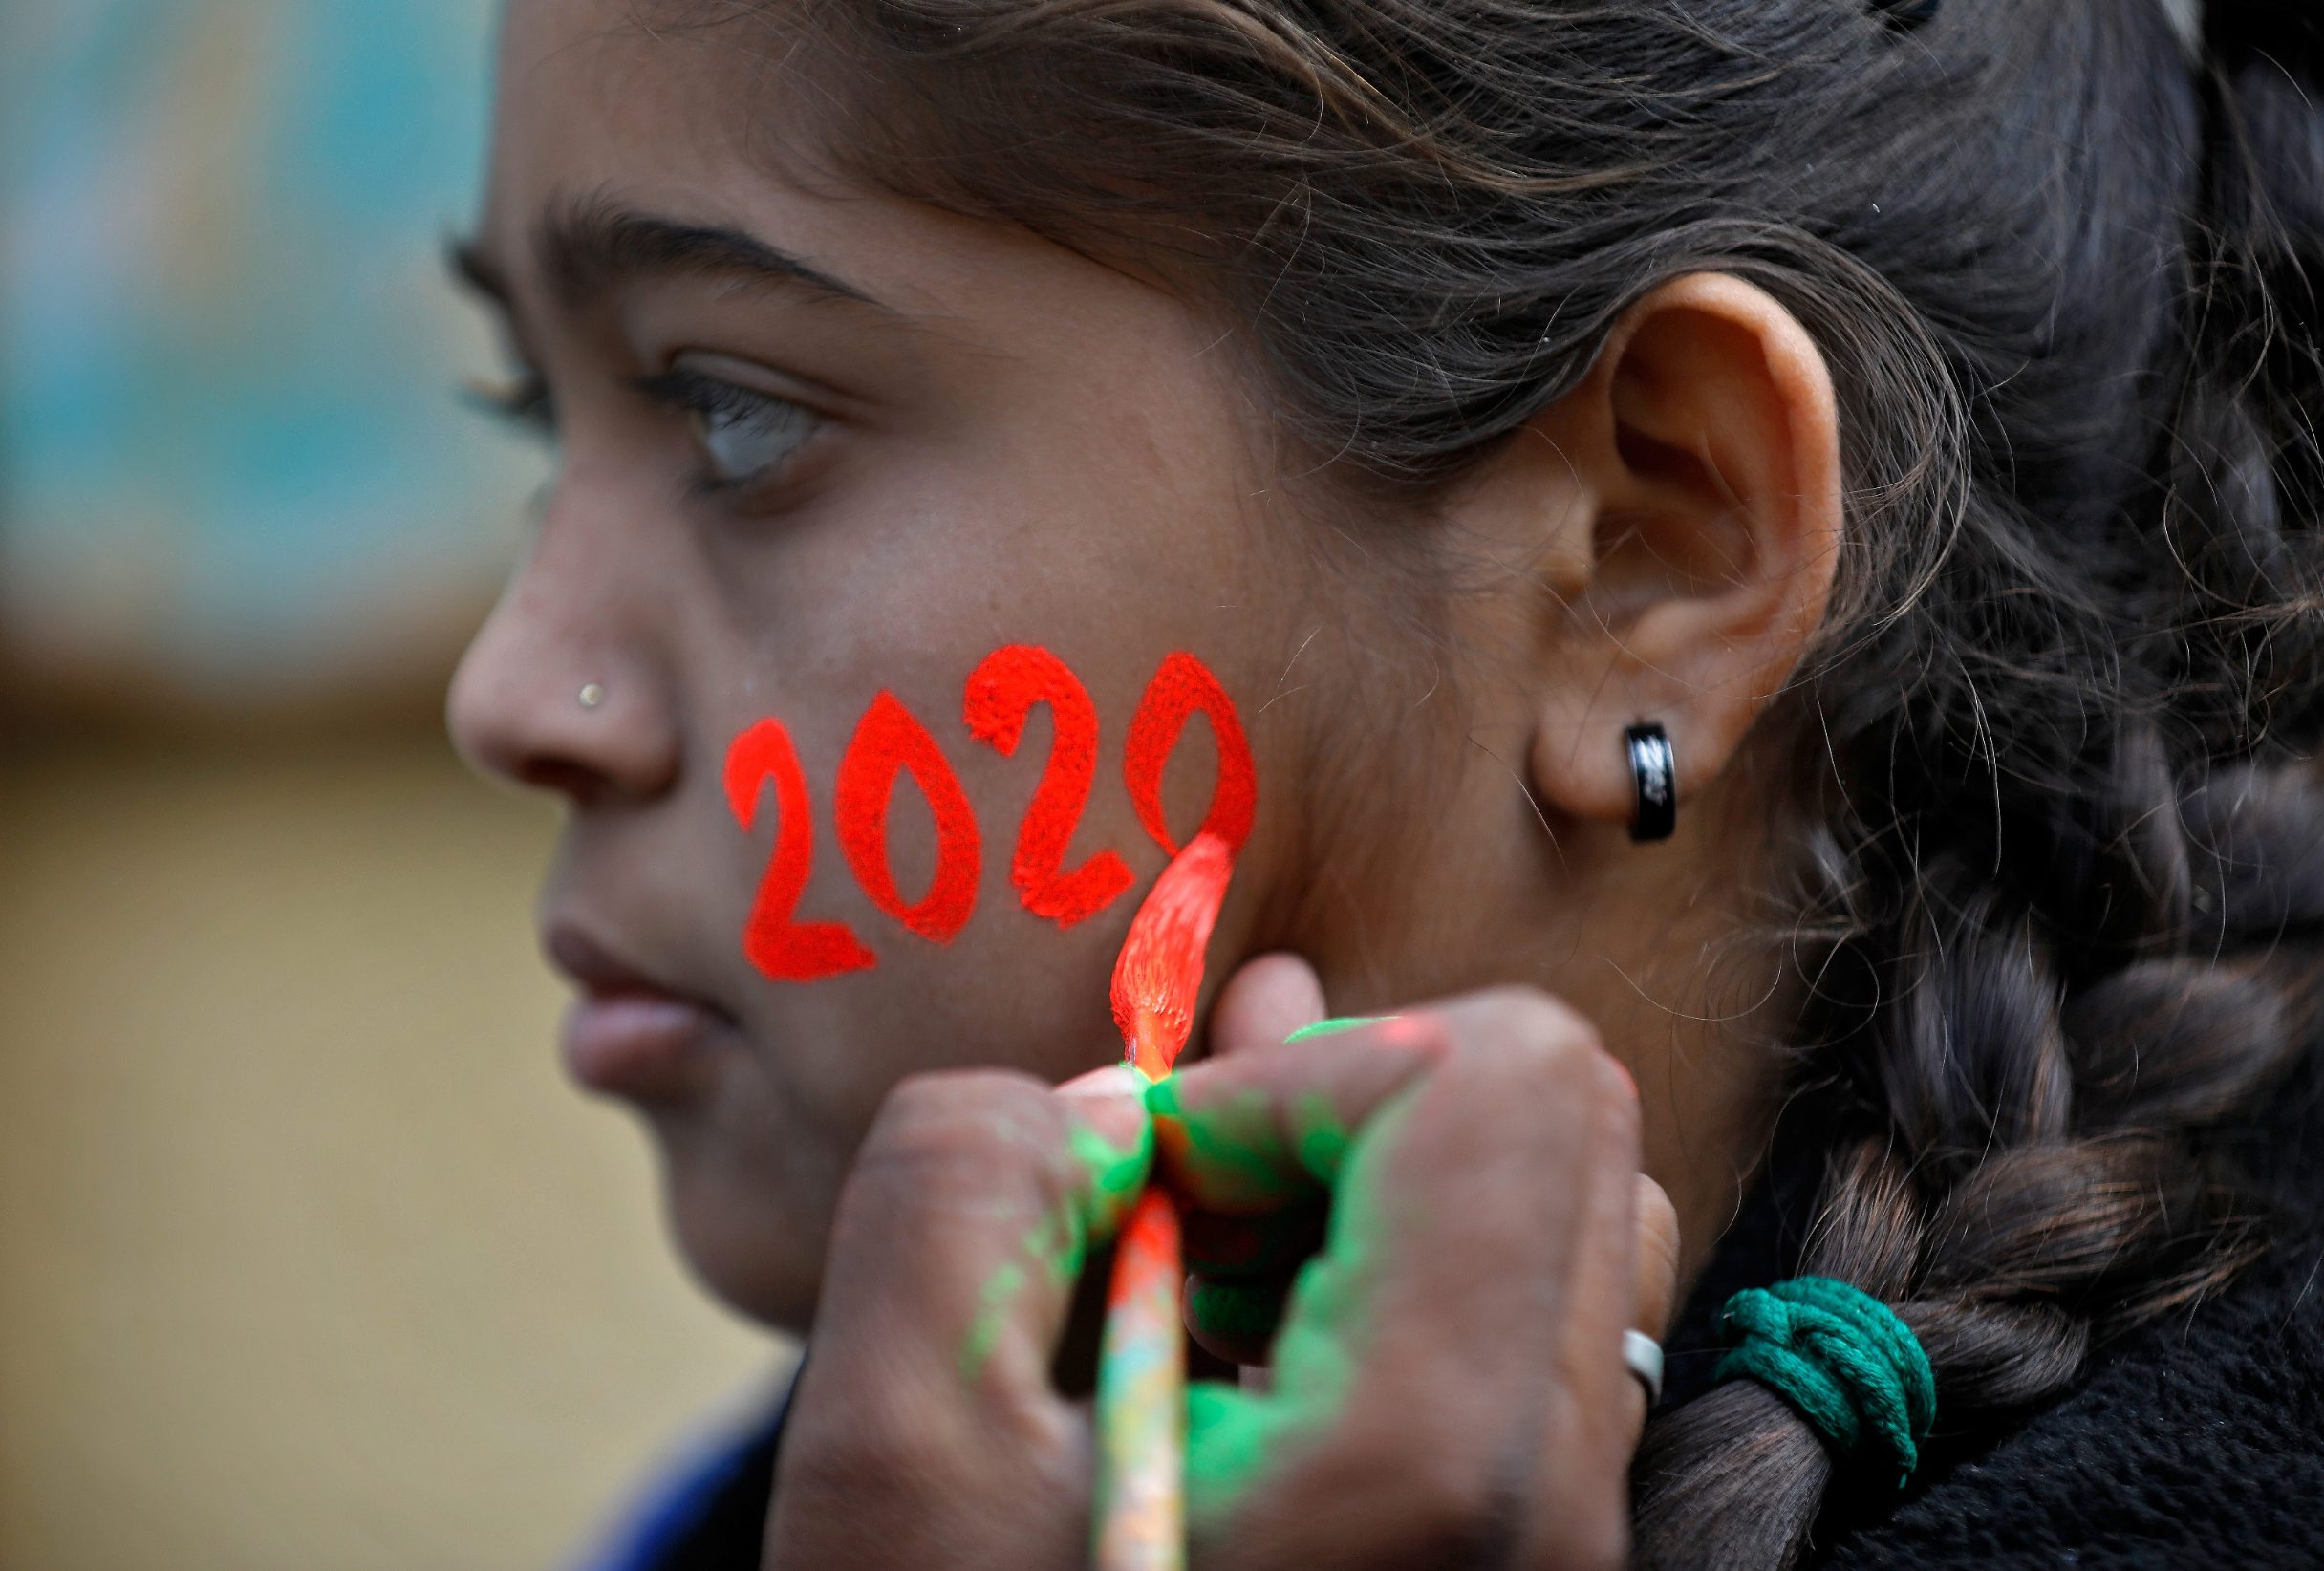 A girl gets her face painted in the digits of number 2020 during celebrations to welcome the New Year at a school in Ahmedabad, India, December 31, 2019. REUTERS/Amit Dave